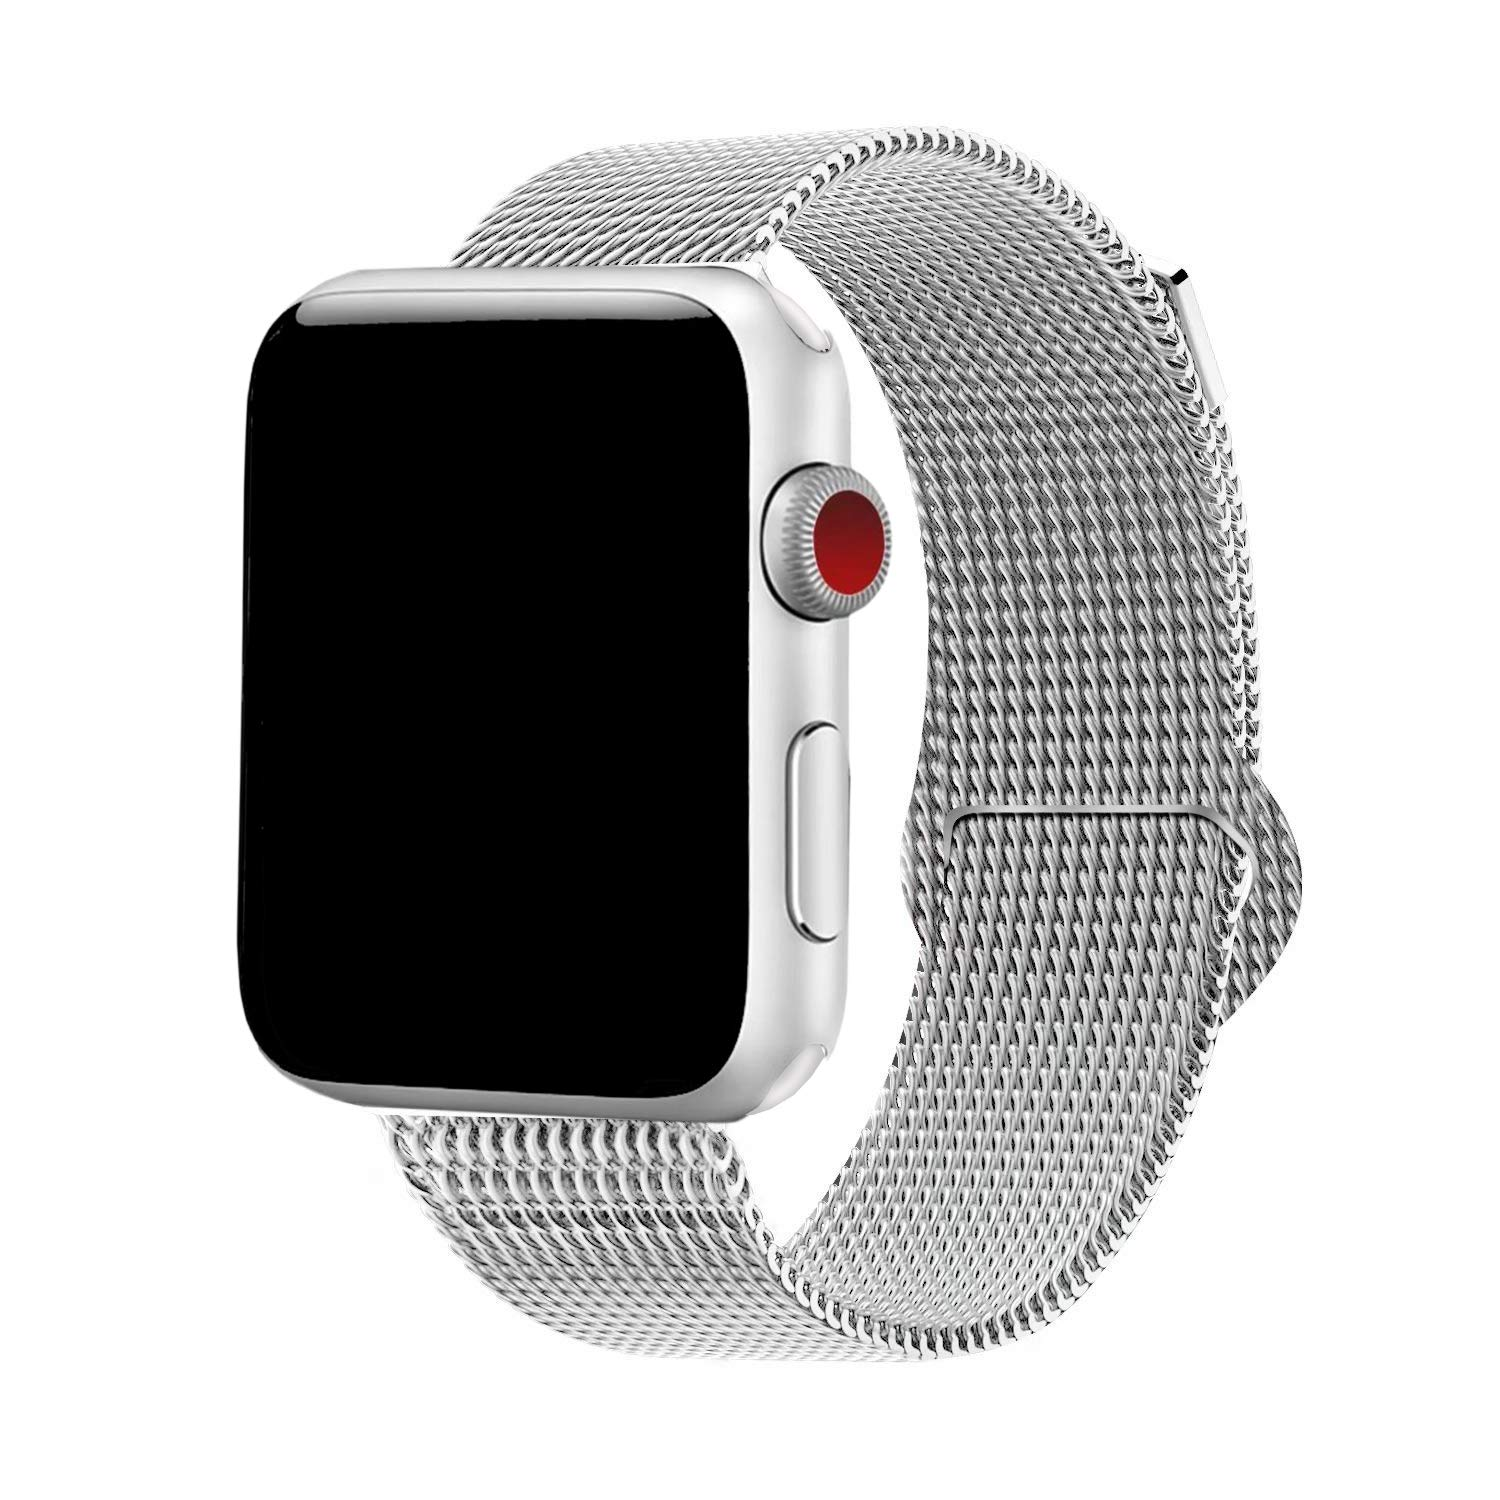 Yaber Stainless Steel Mesh with Adjustable Magnetic Closure Replacement Band Compatible for Apple Watch Series 1/2/3/4 (Silver, 38MM/40MM) by YABER